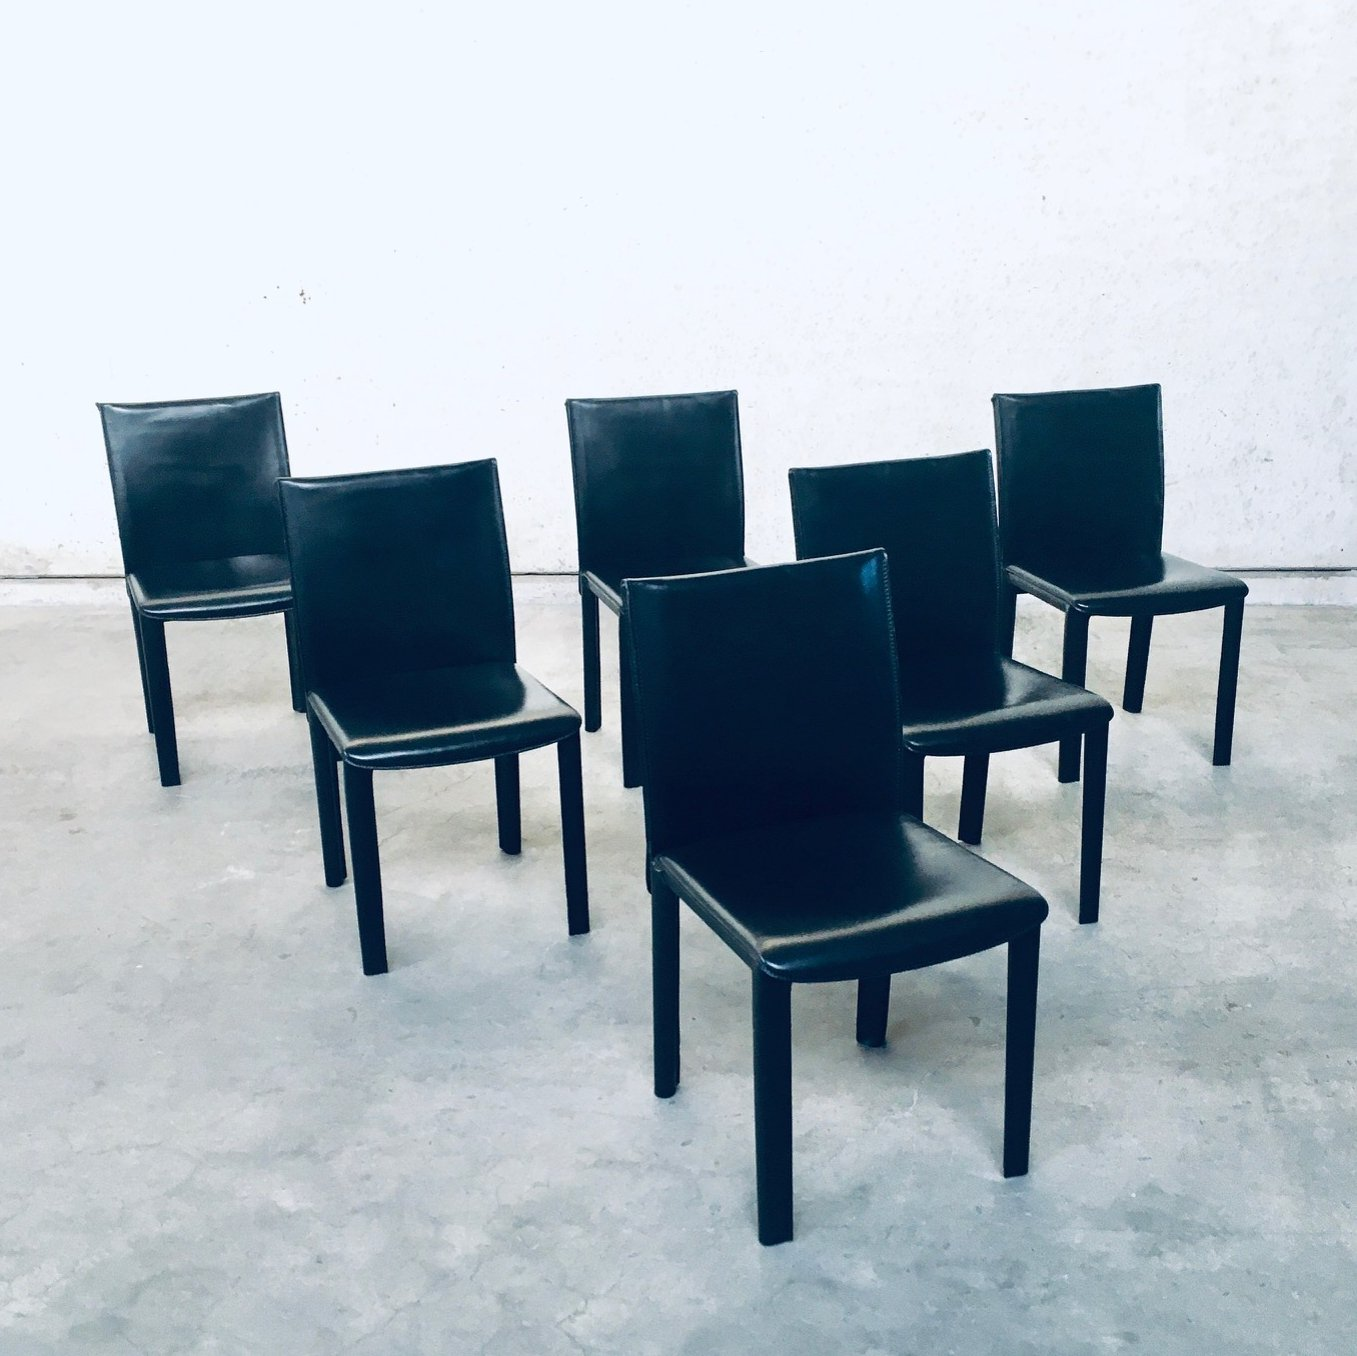 Set of 9 Black Leather Dining Chairs by Arper, Italy 9's   9